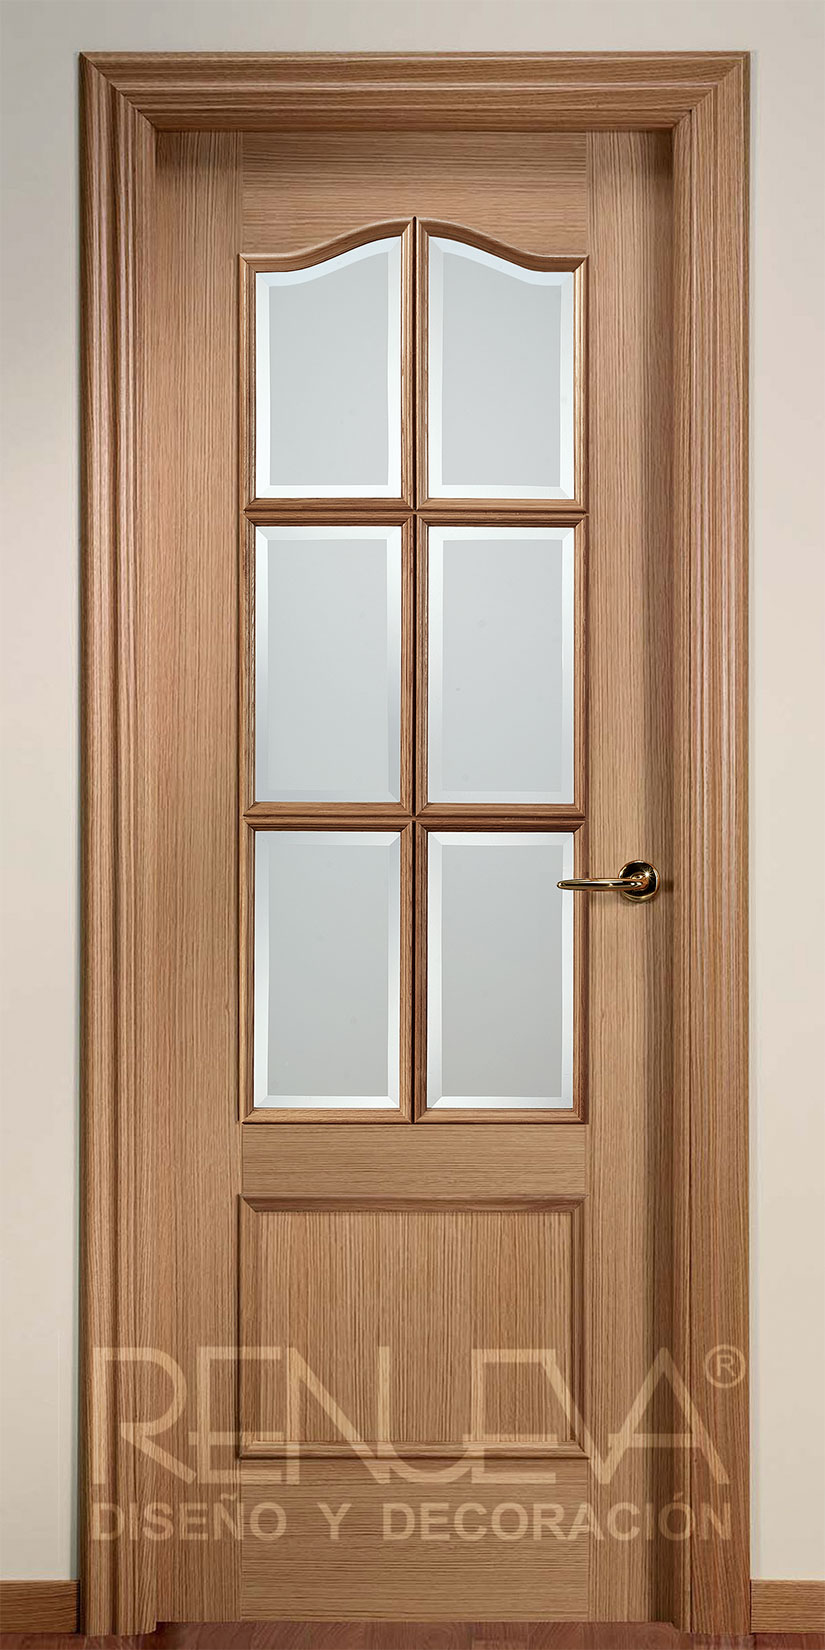 Oferta puerta modelo 32 6v madera de roble barnizada for Decor 1 32